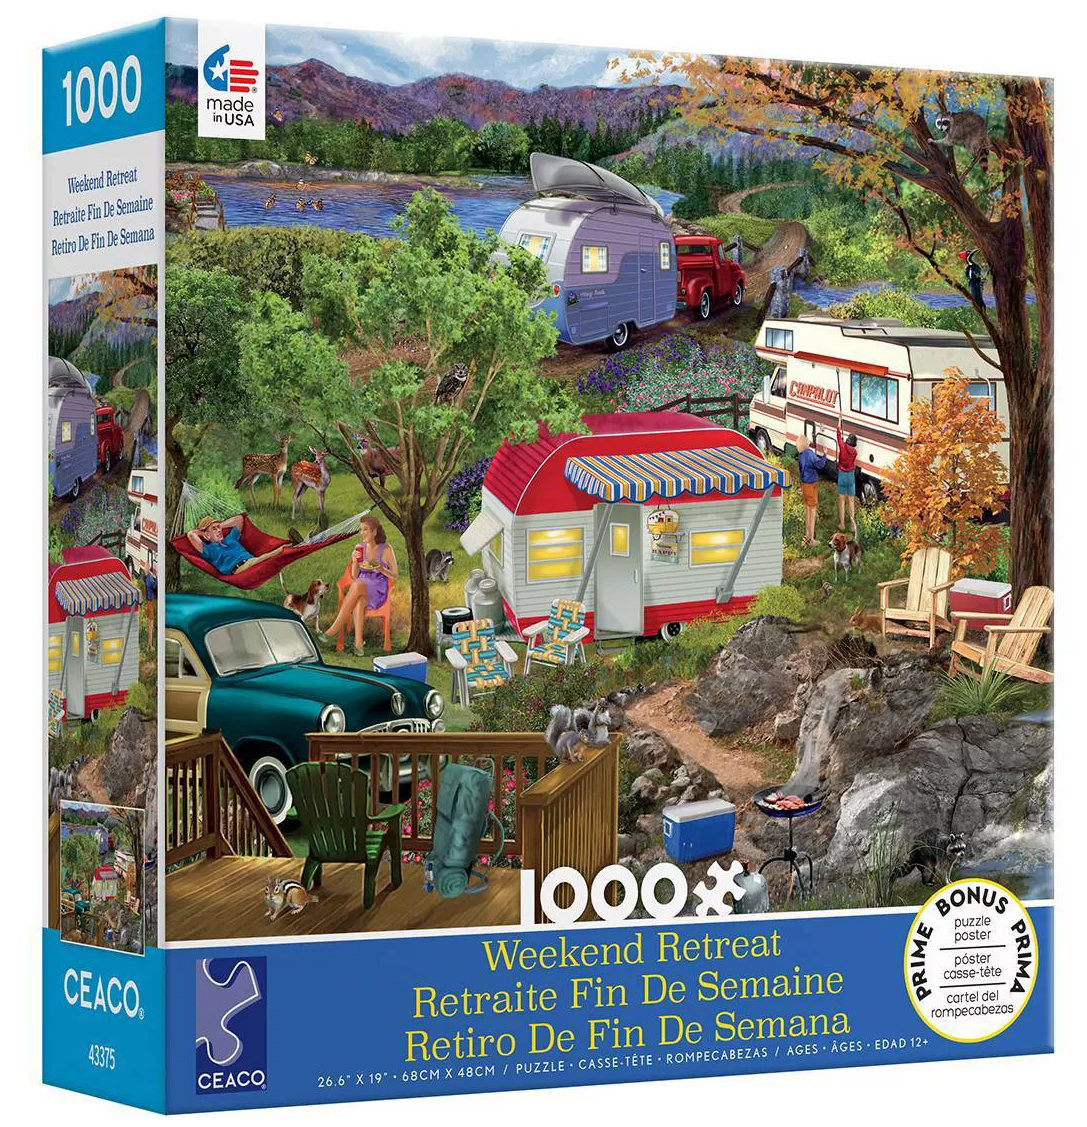 Camping Forest Jigsaw Puzzle